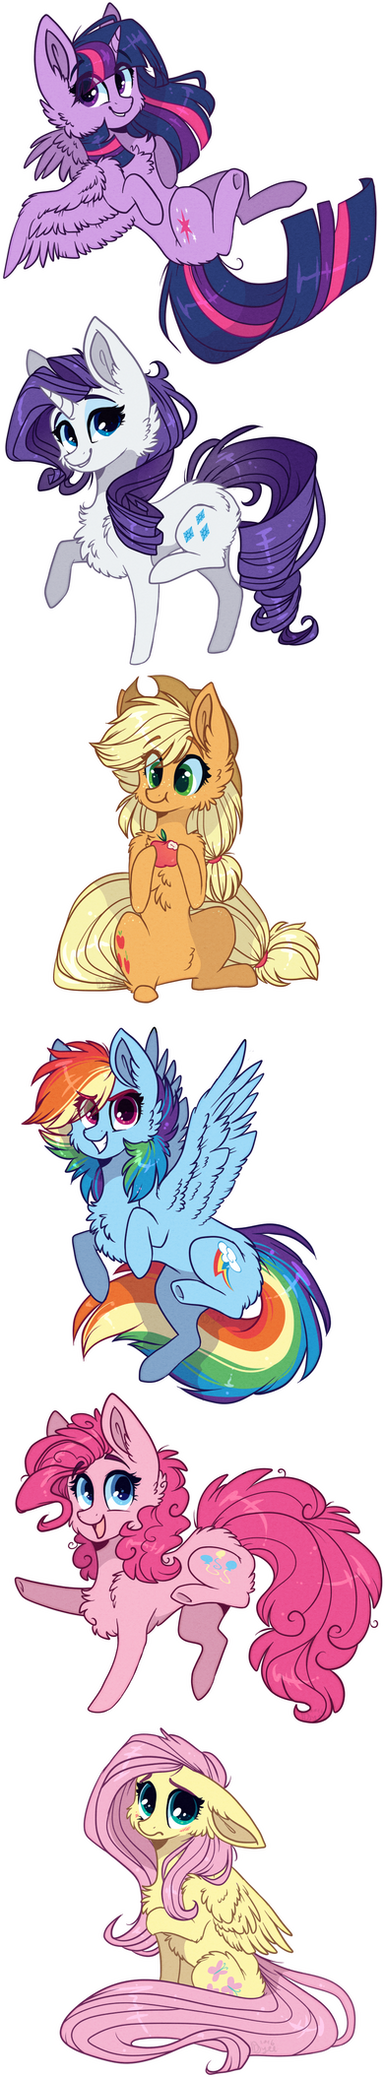 Chibis pack - Main 6 by D-Dyee